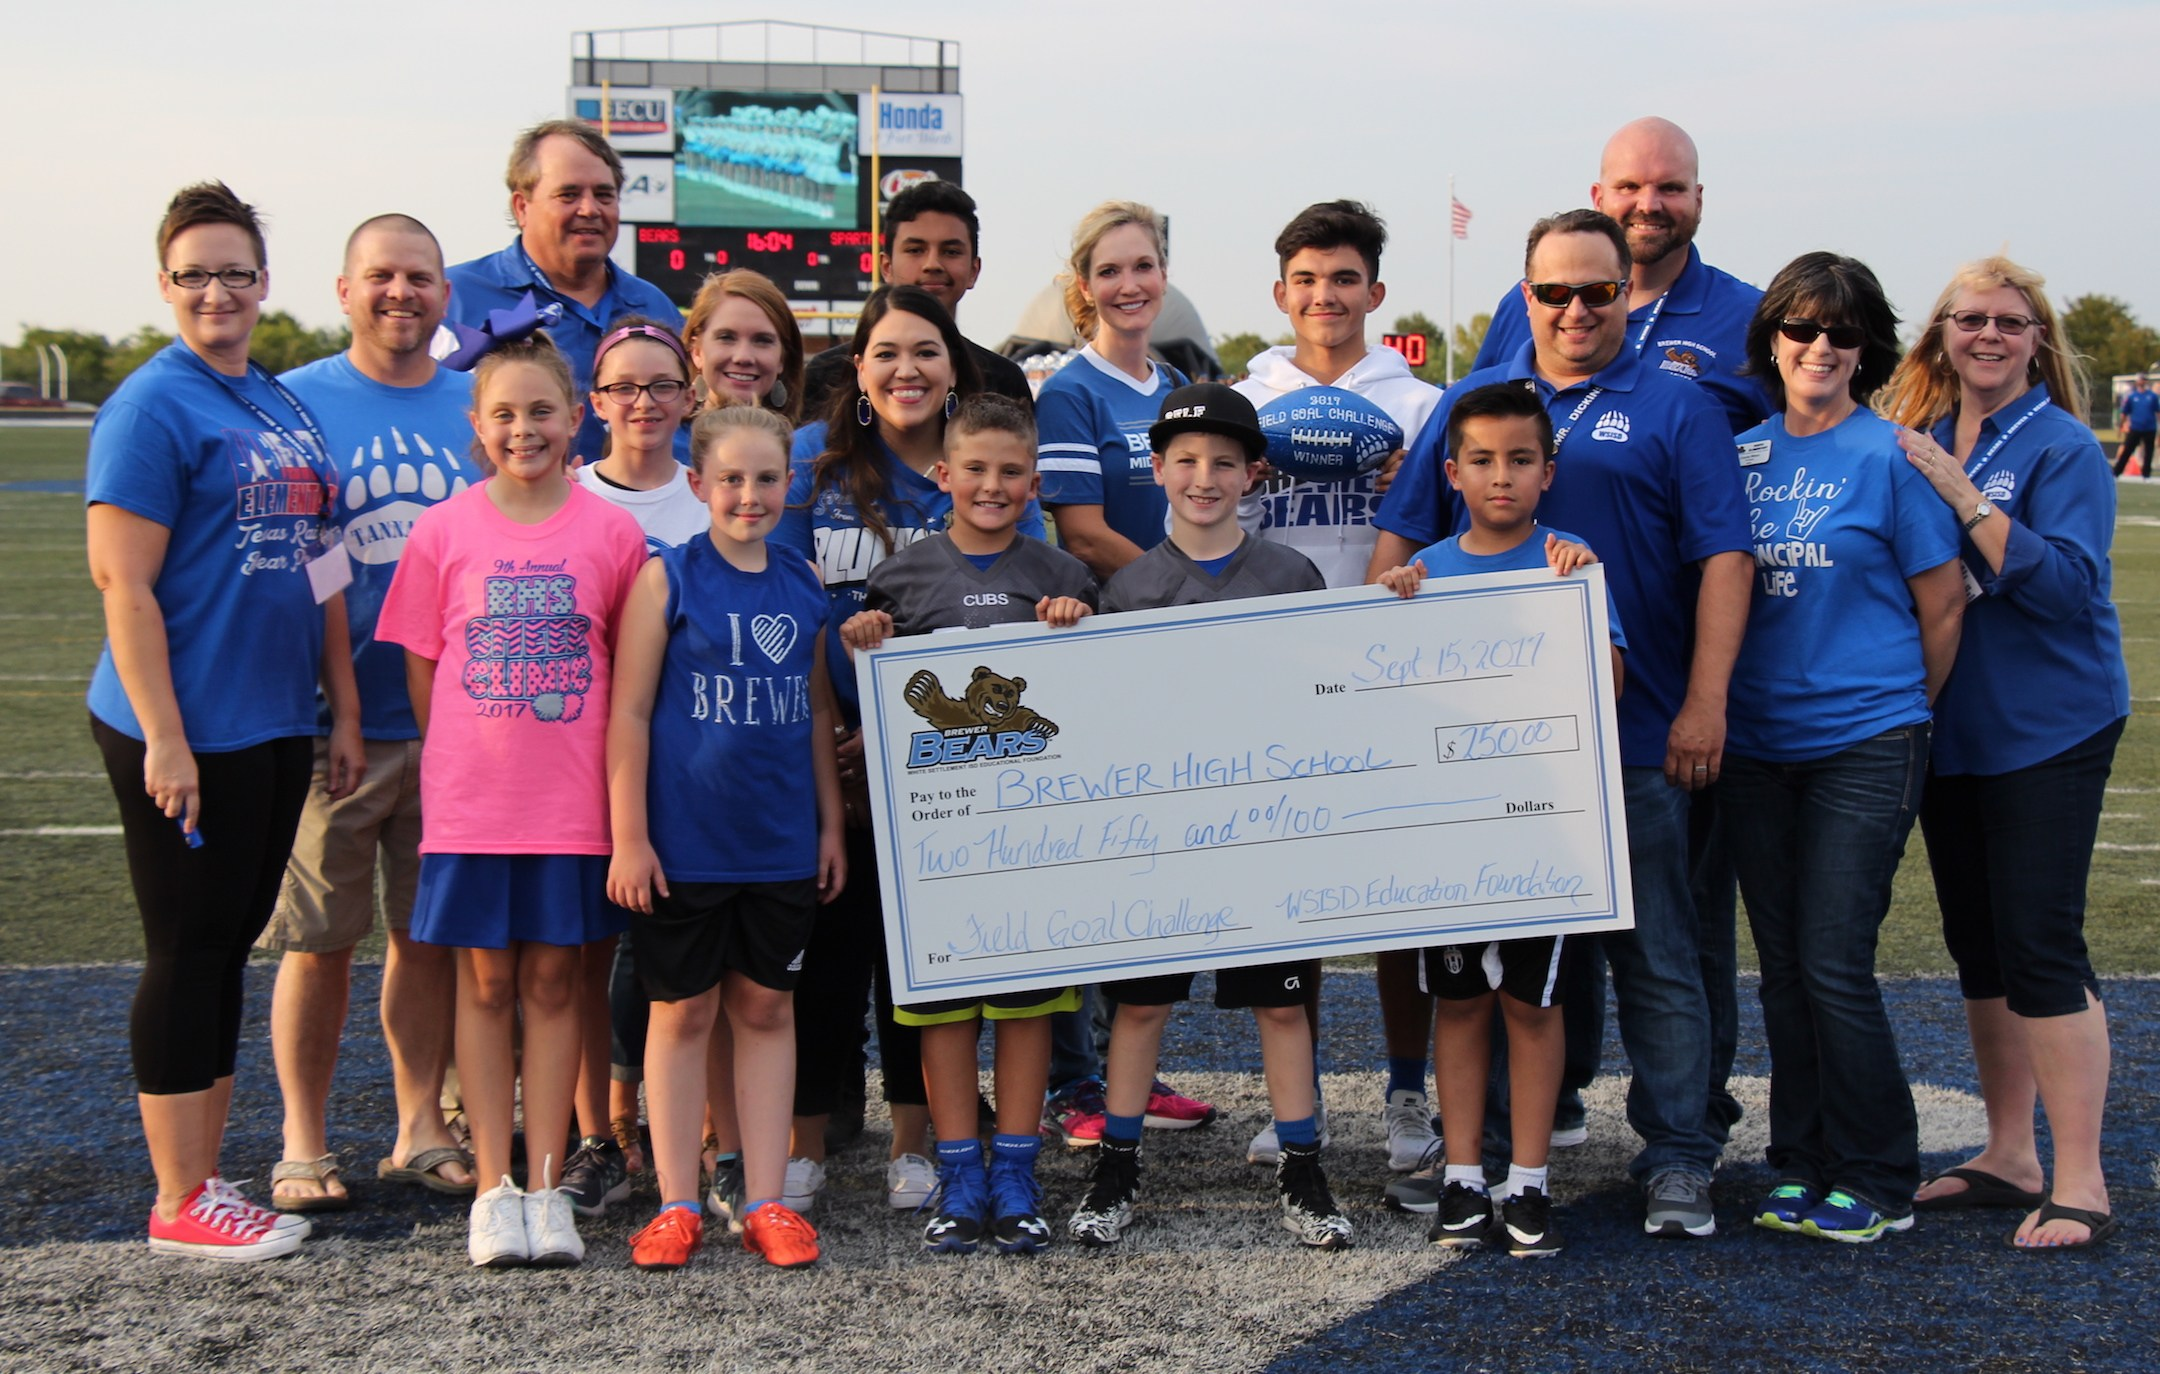 The WSISD Education Foundation sponsored the Field Goal Challenge on Sept. 15, 2017, and Brewer Middle School won $250.